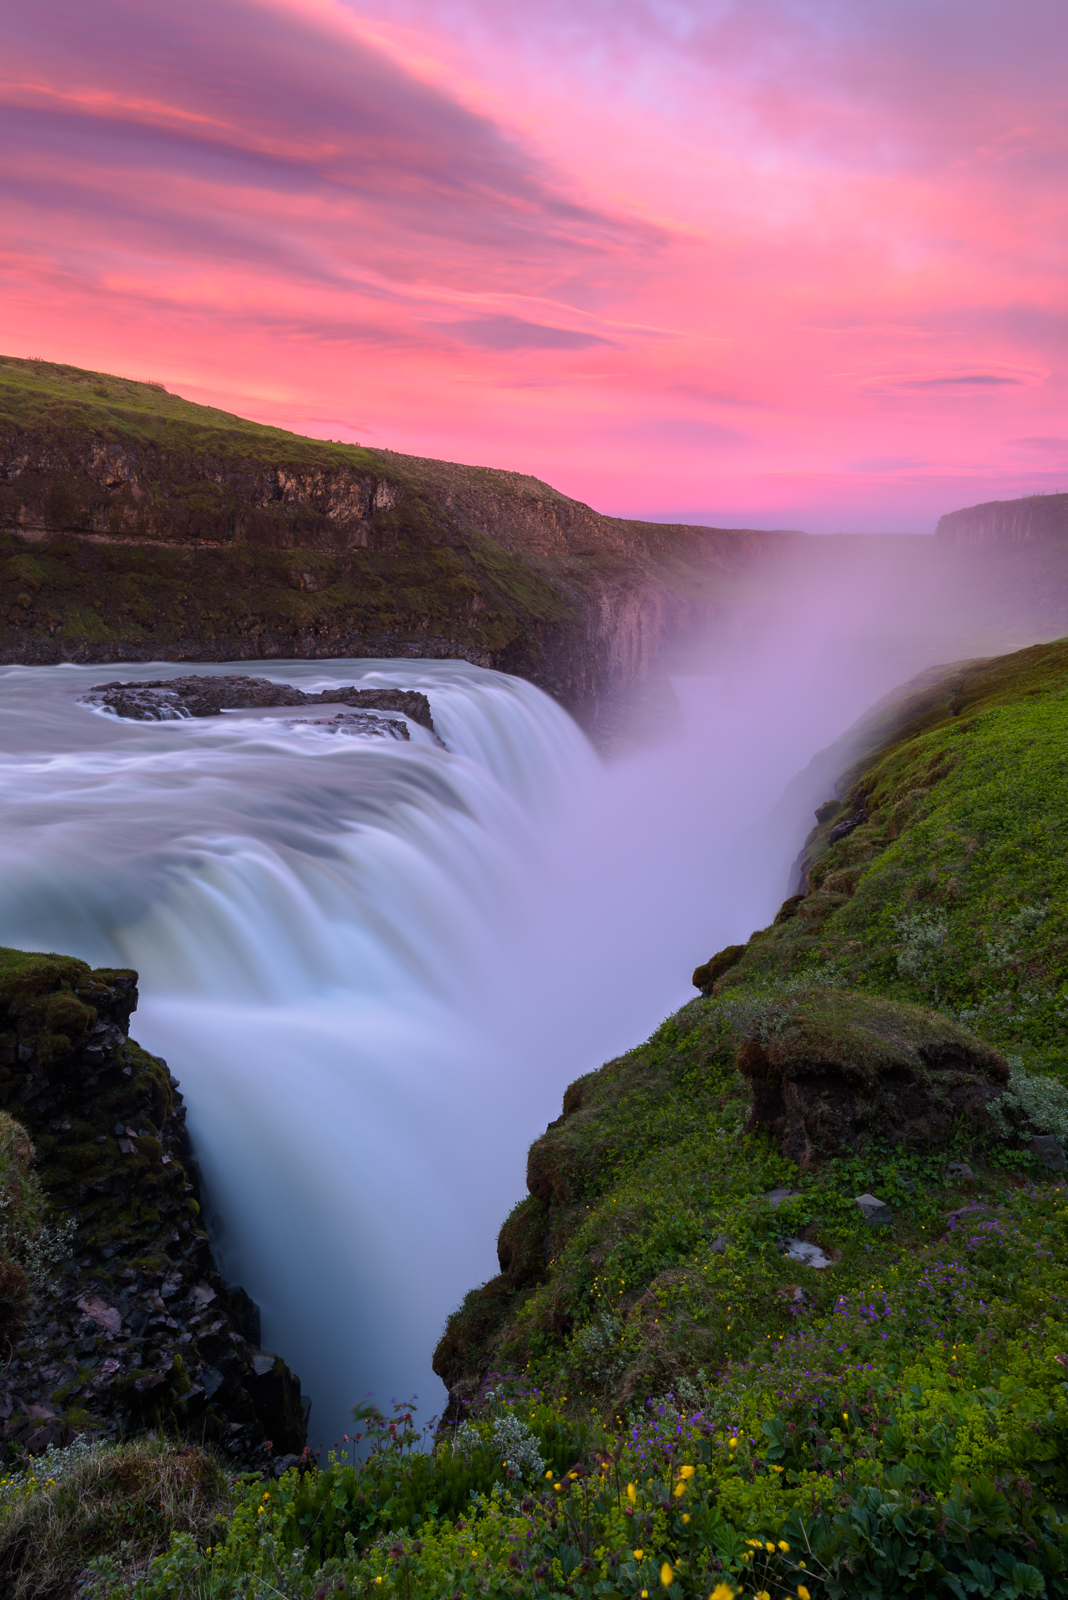 Gullfoss is a waterfall located in the canyon of the Hvítá river in southwest Iceland. This was captured at sunriuse at 3:30am...